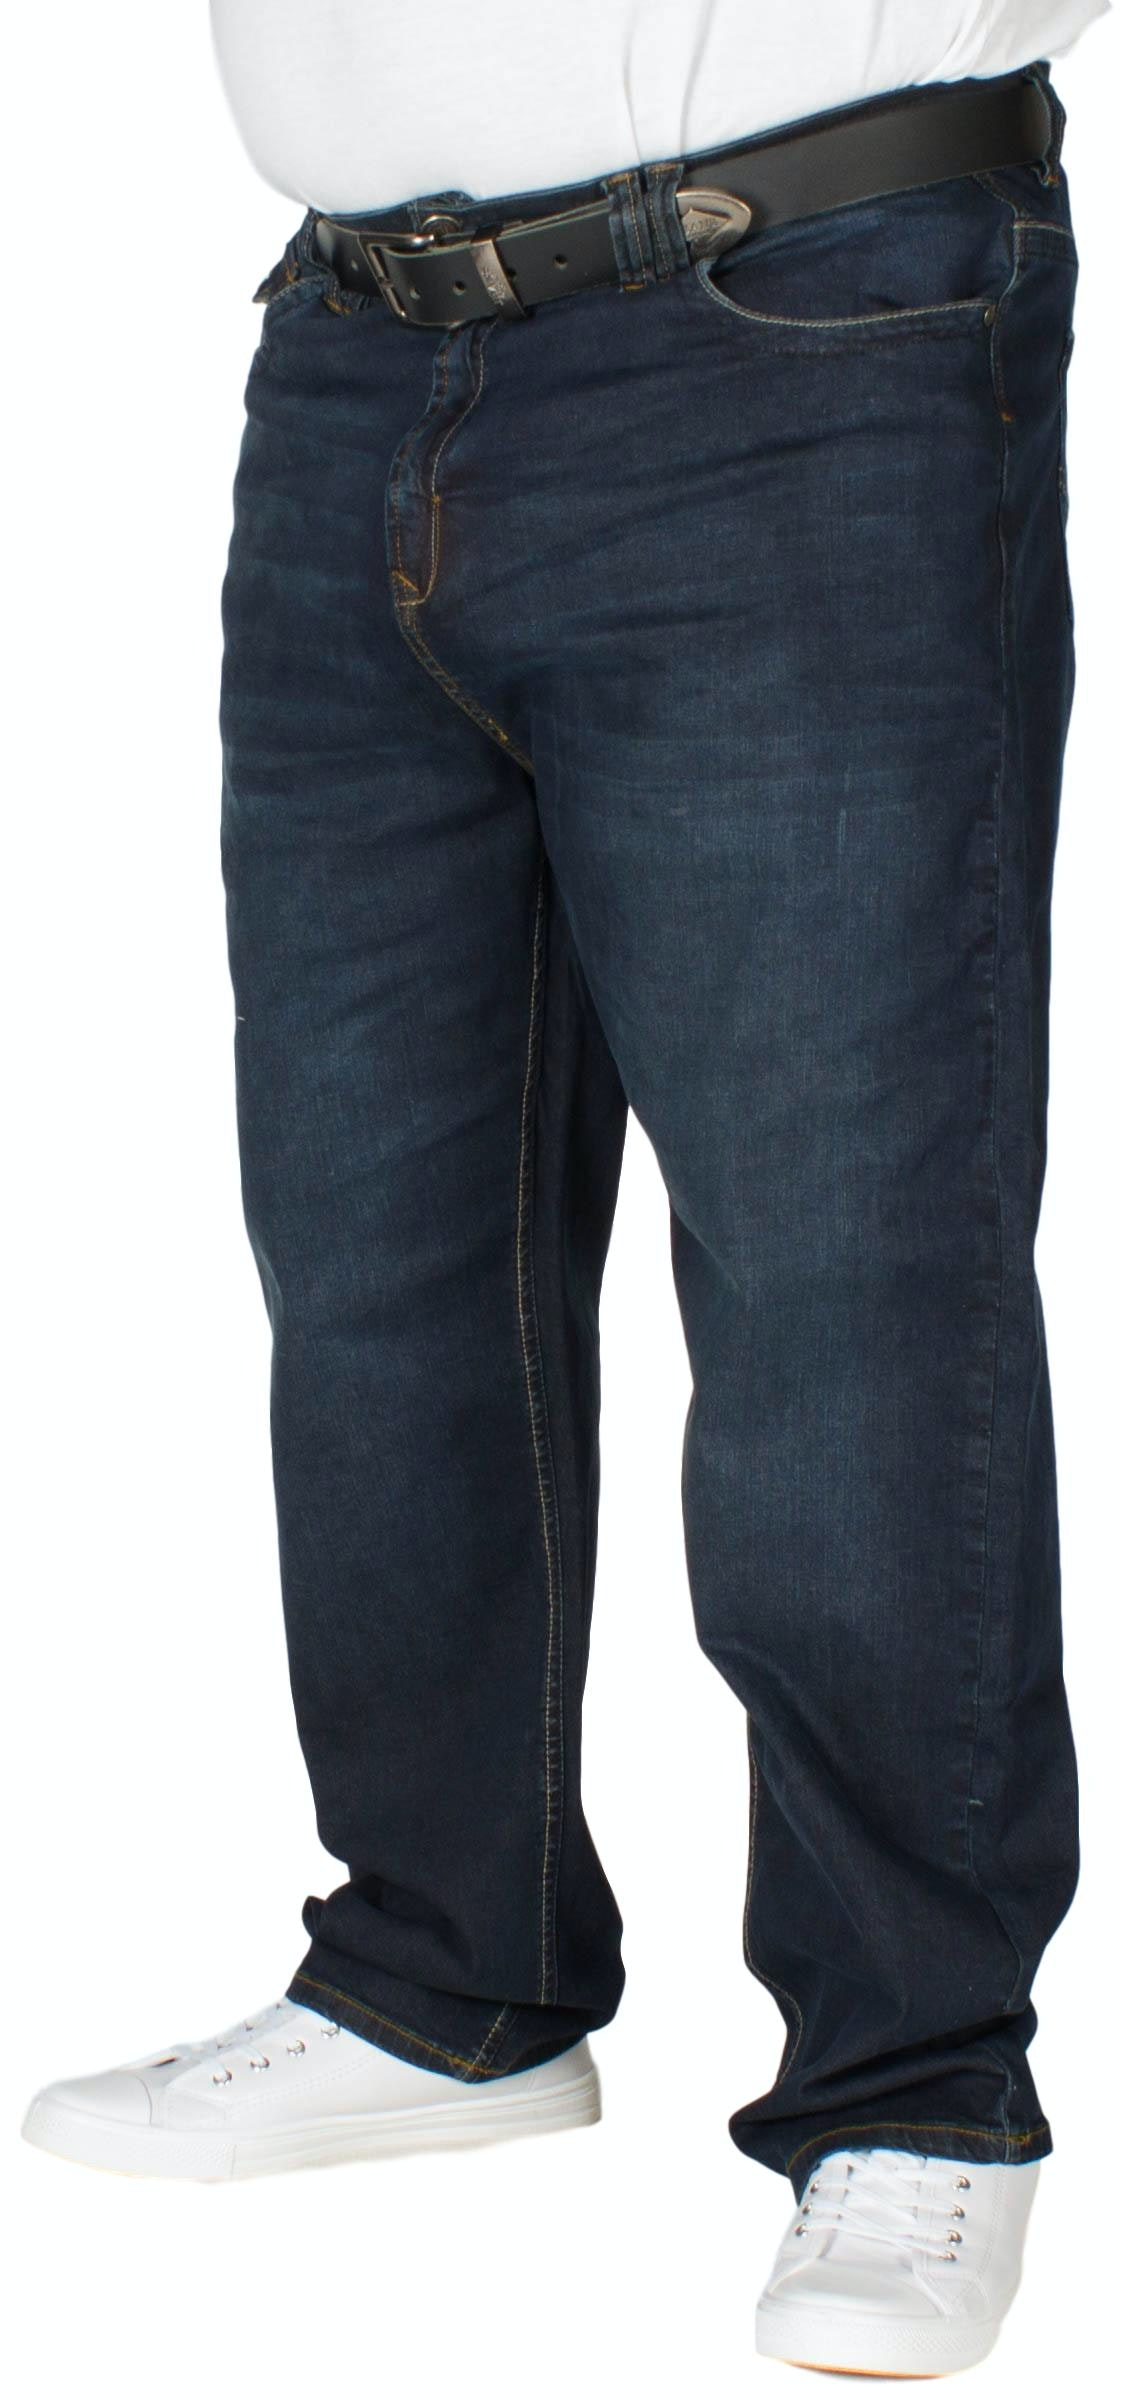 KAM Vincent Stretch Jean Dark Wash